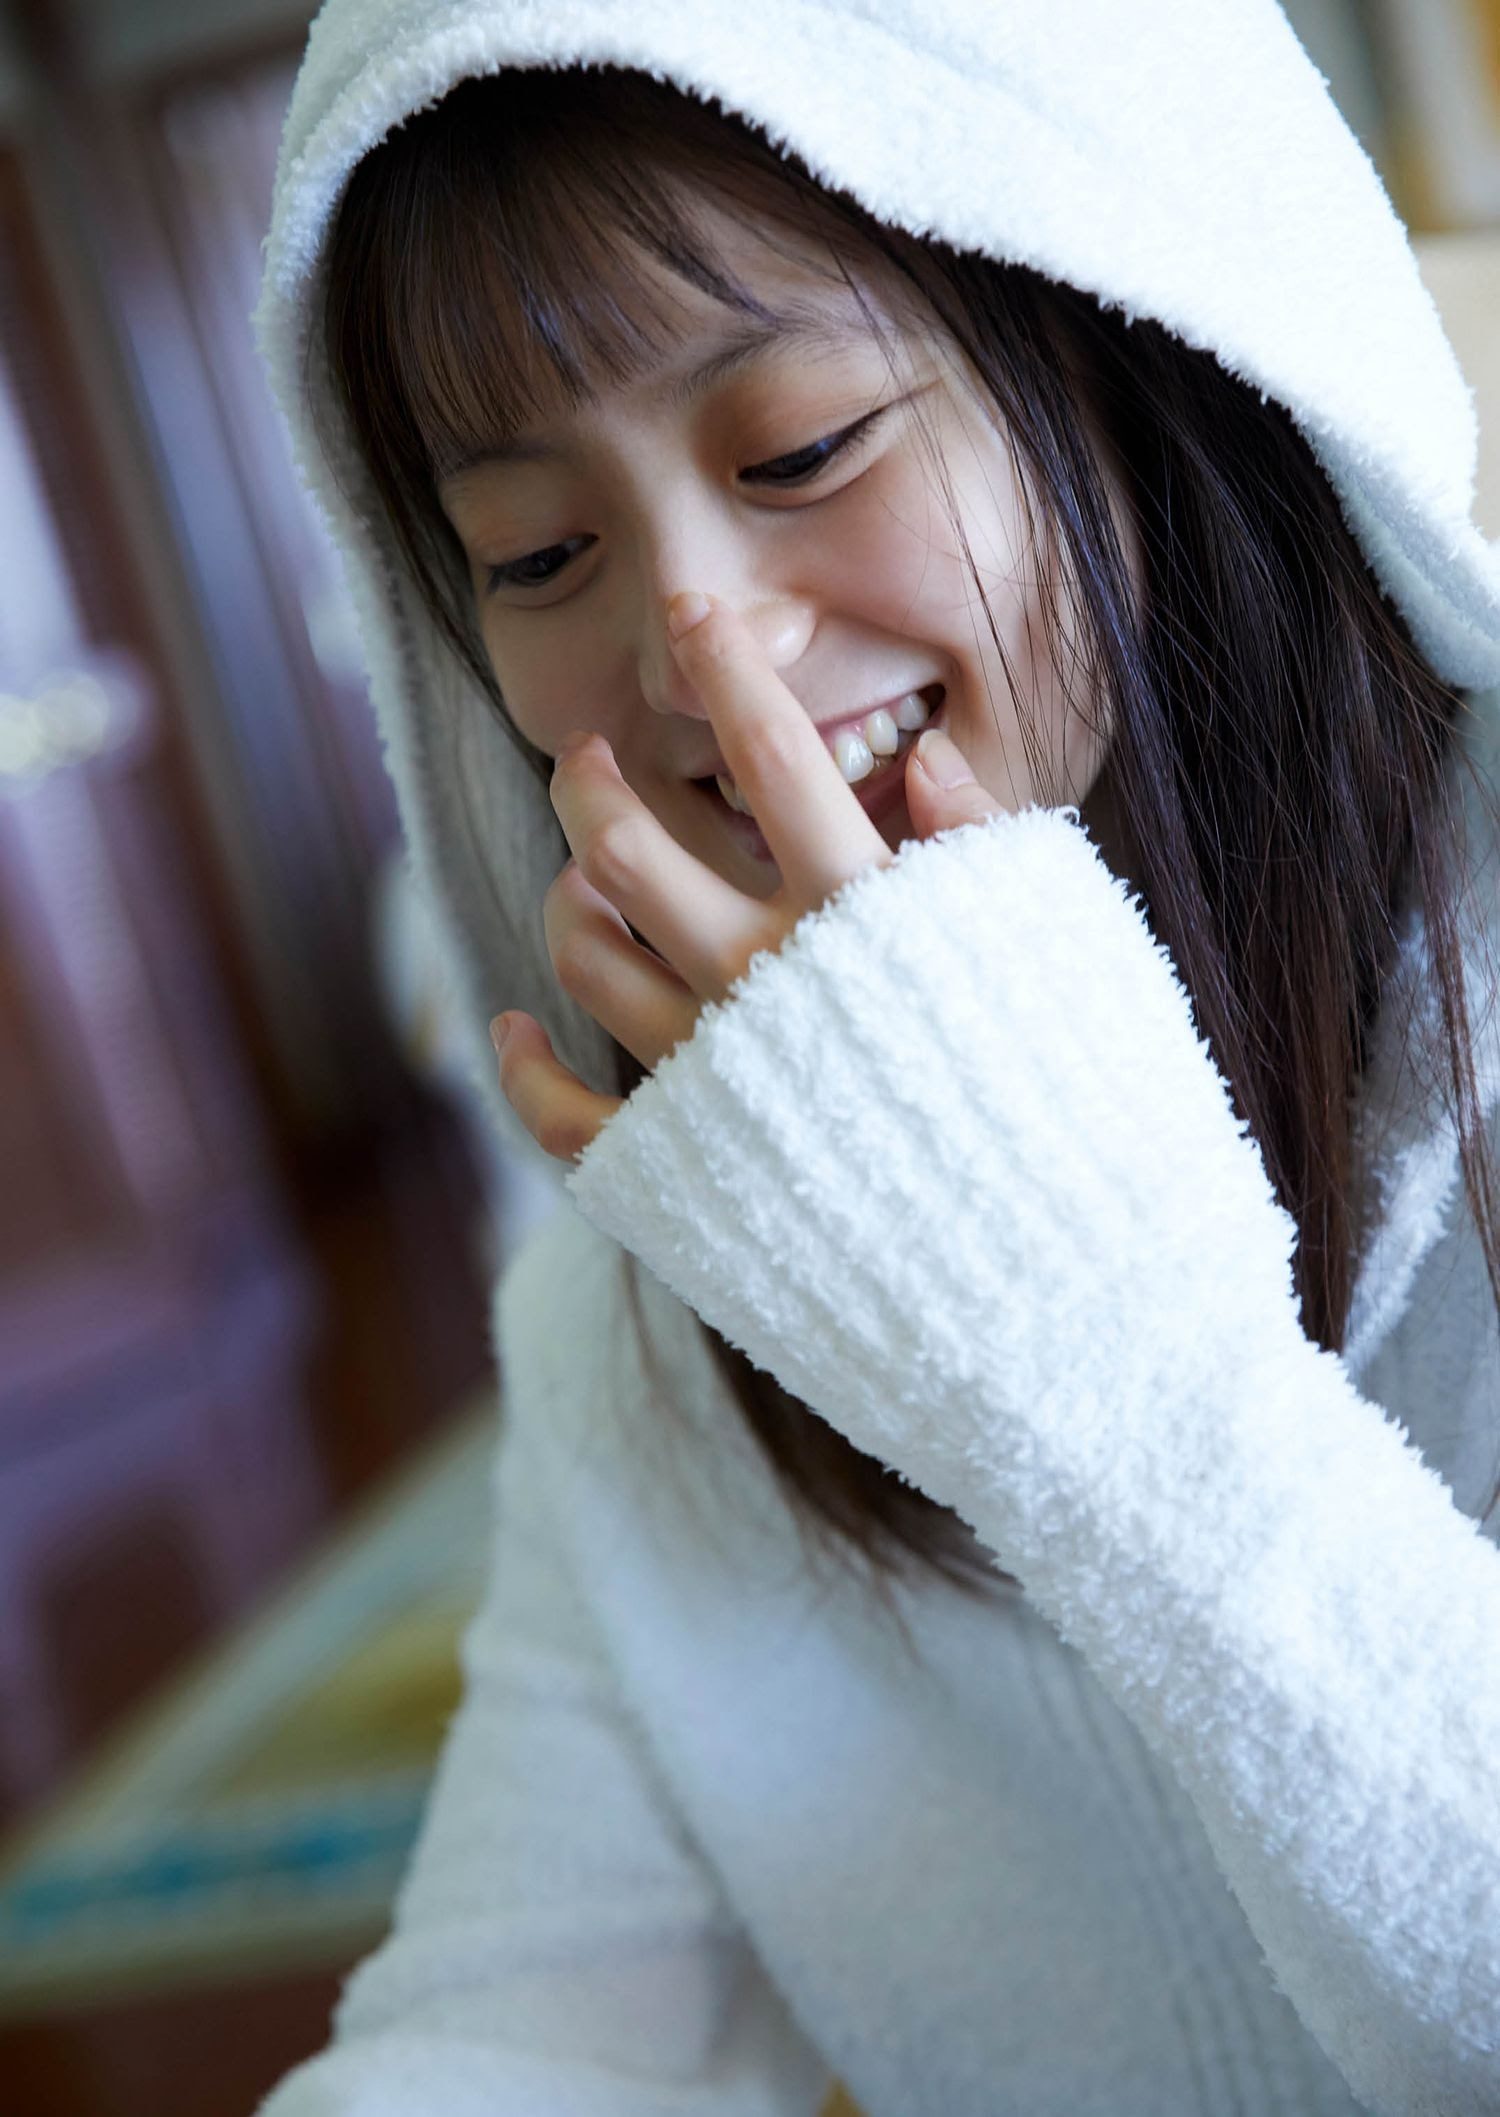 Without a doubt the youngest actress Mio Imada065